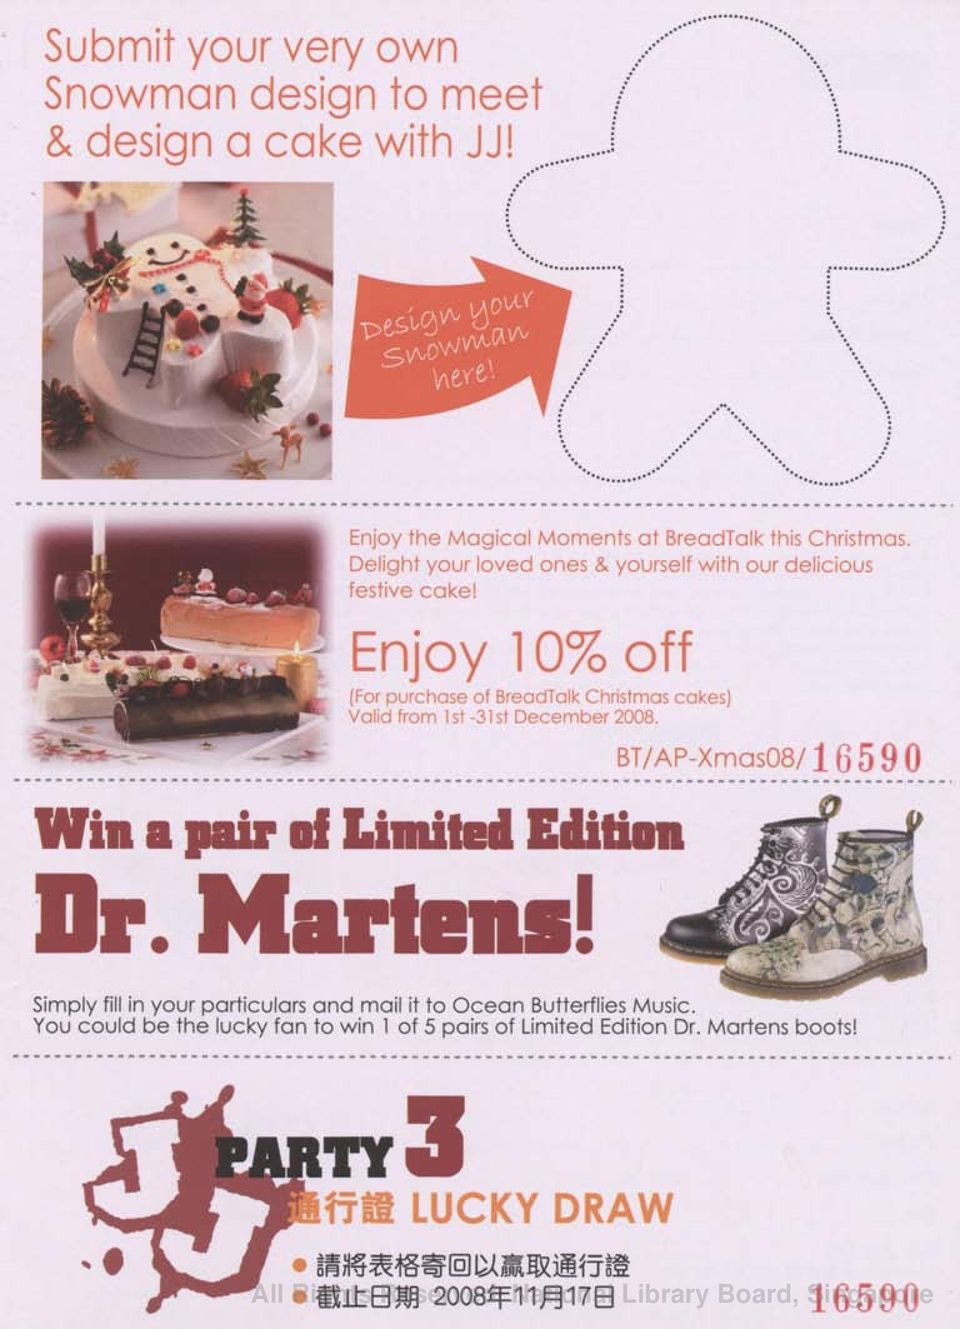 Enjoy 10% off (For purchase of BreadTalk Christmas cakes) Valid from 1st-31st December 2008. Win a pair of Limited Edition Dr. Martens!